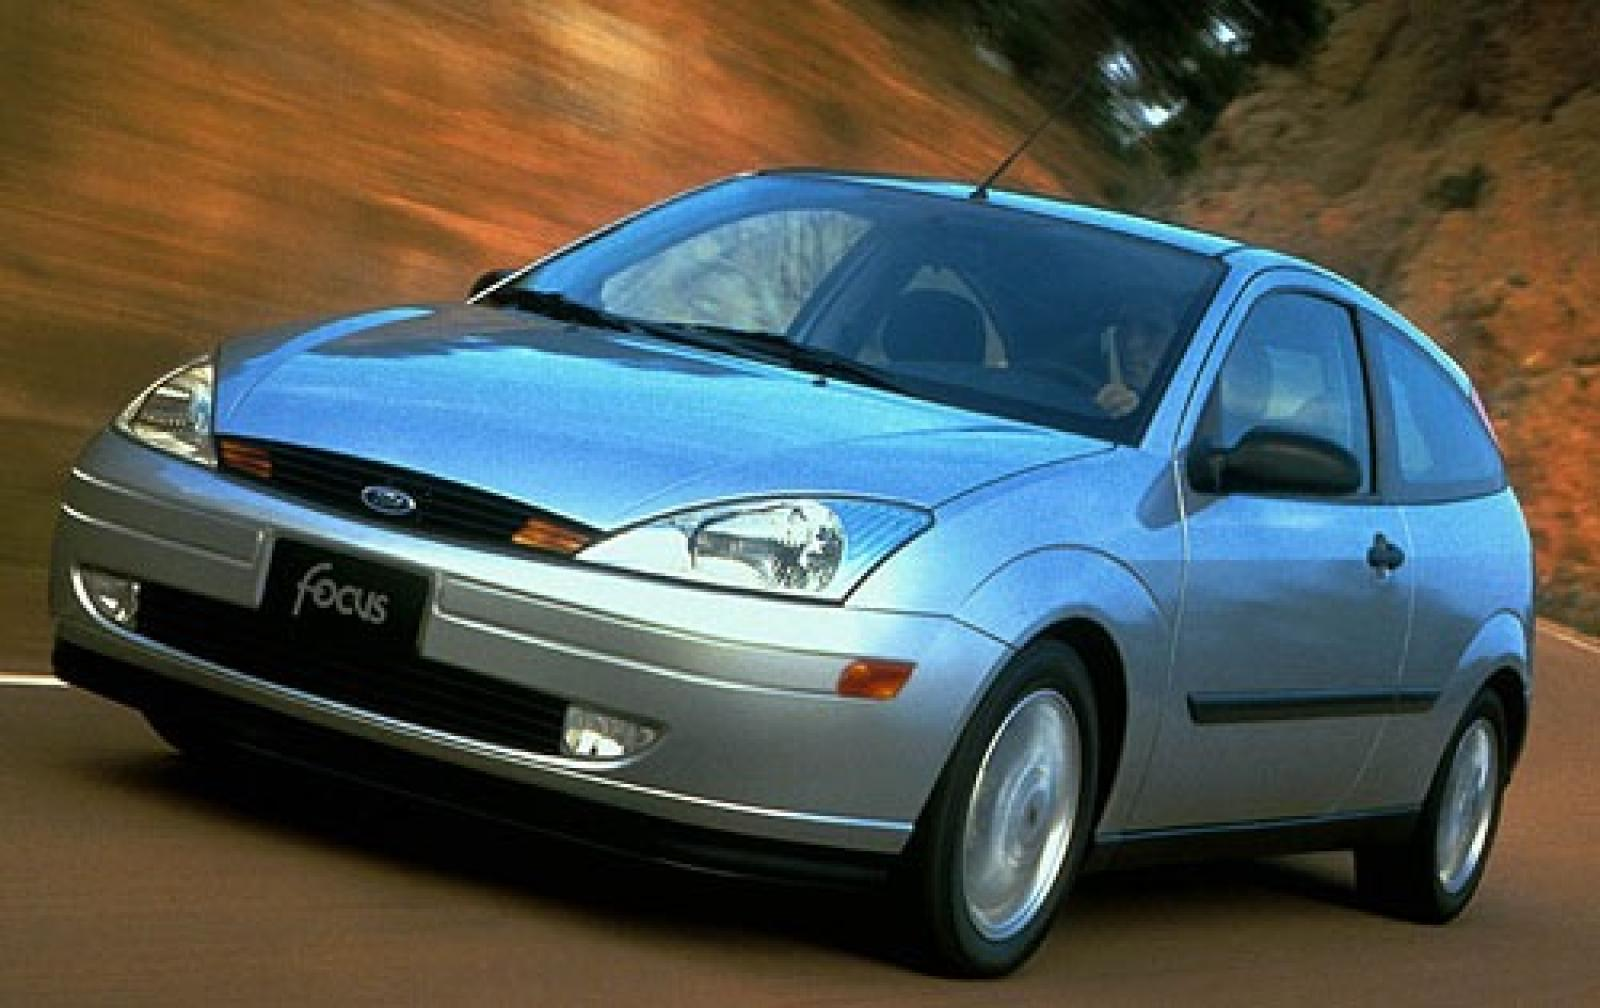 2003 ford focus information and photos zombiedrive. Black Bedroom Furniture Sets. Home Design Ideas